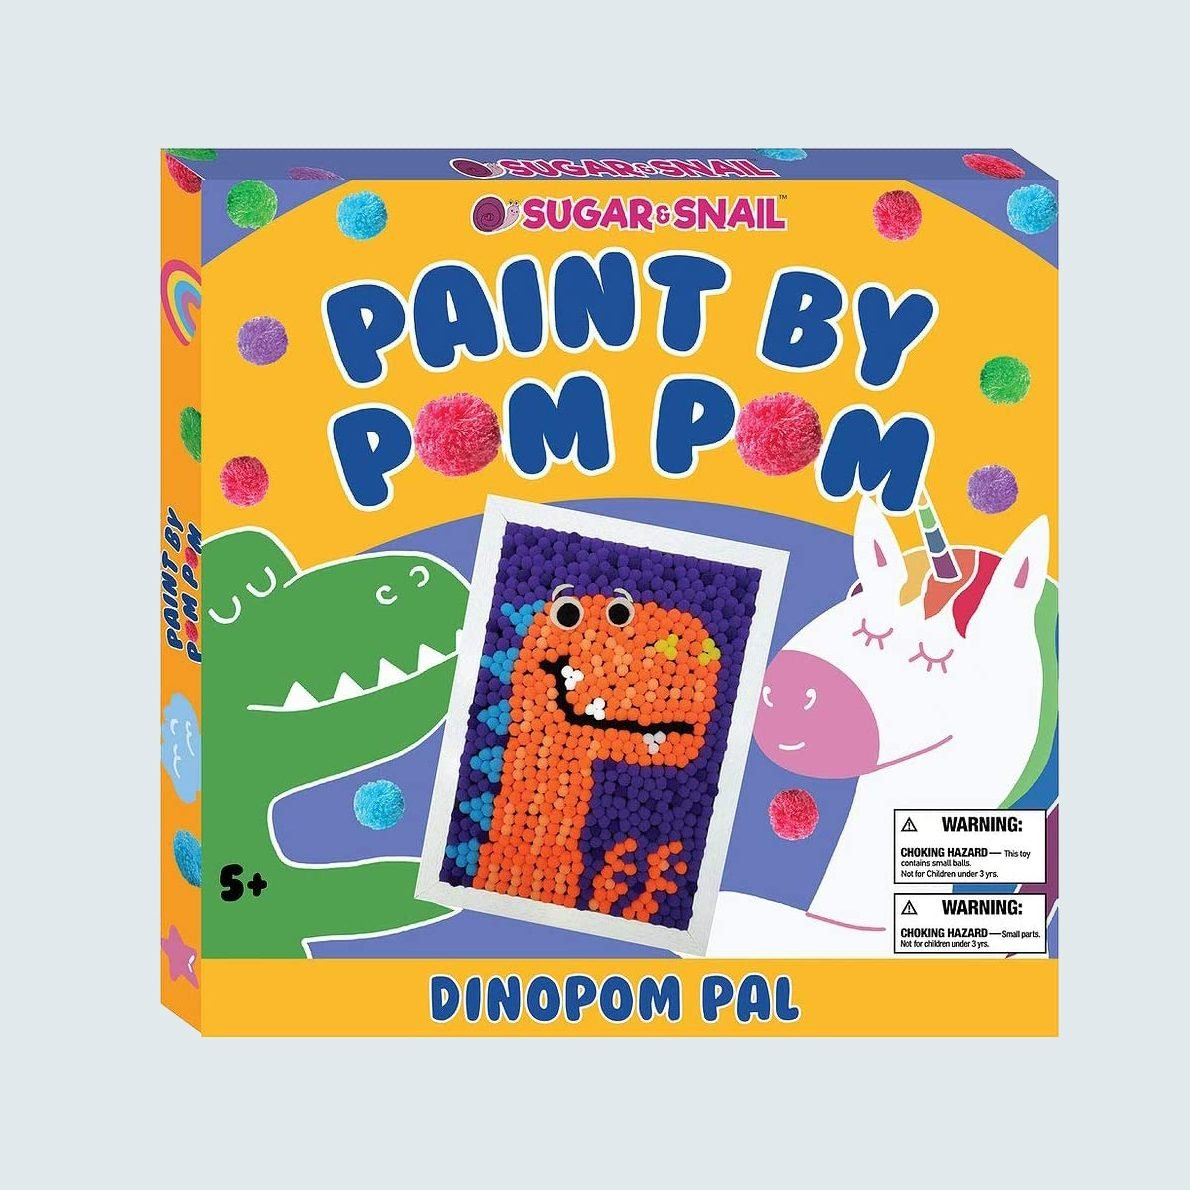 Sugar & Snail Paint by Pom Pom DinoPom Pal